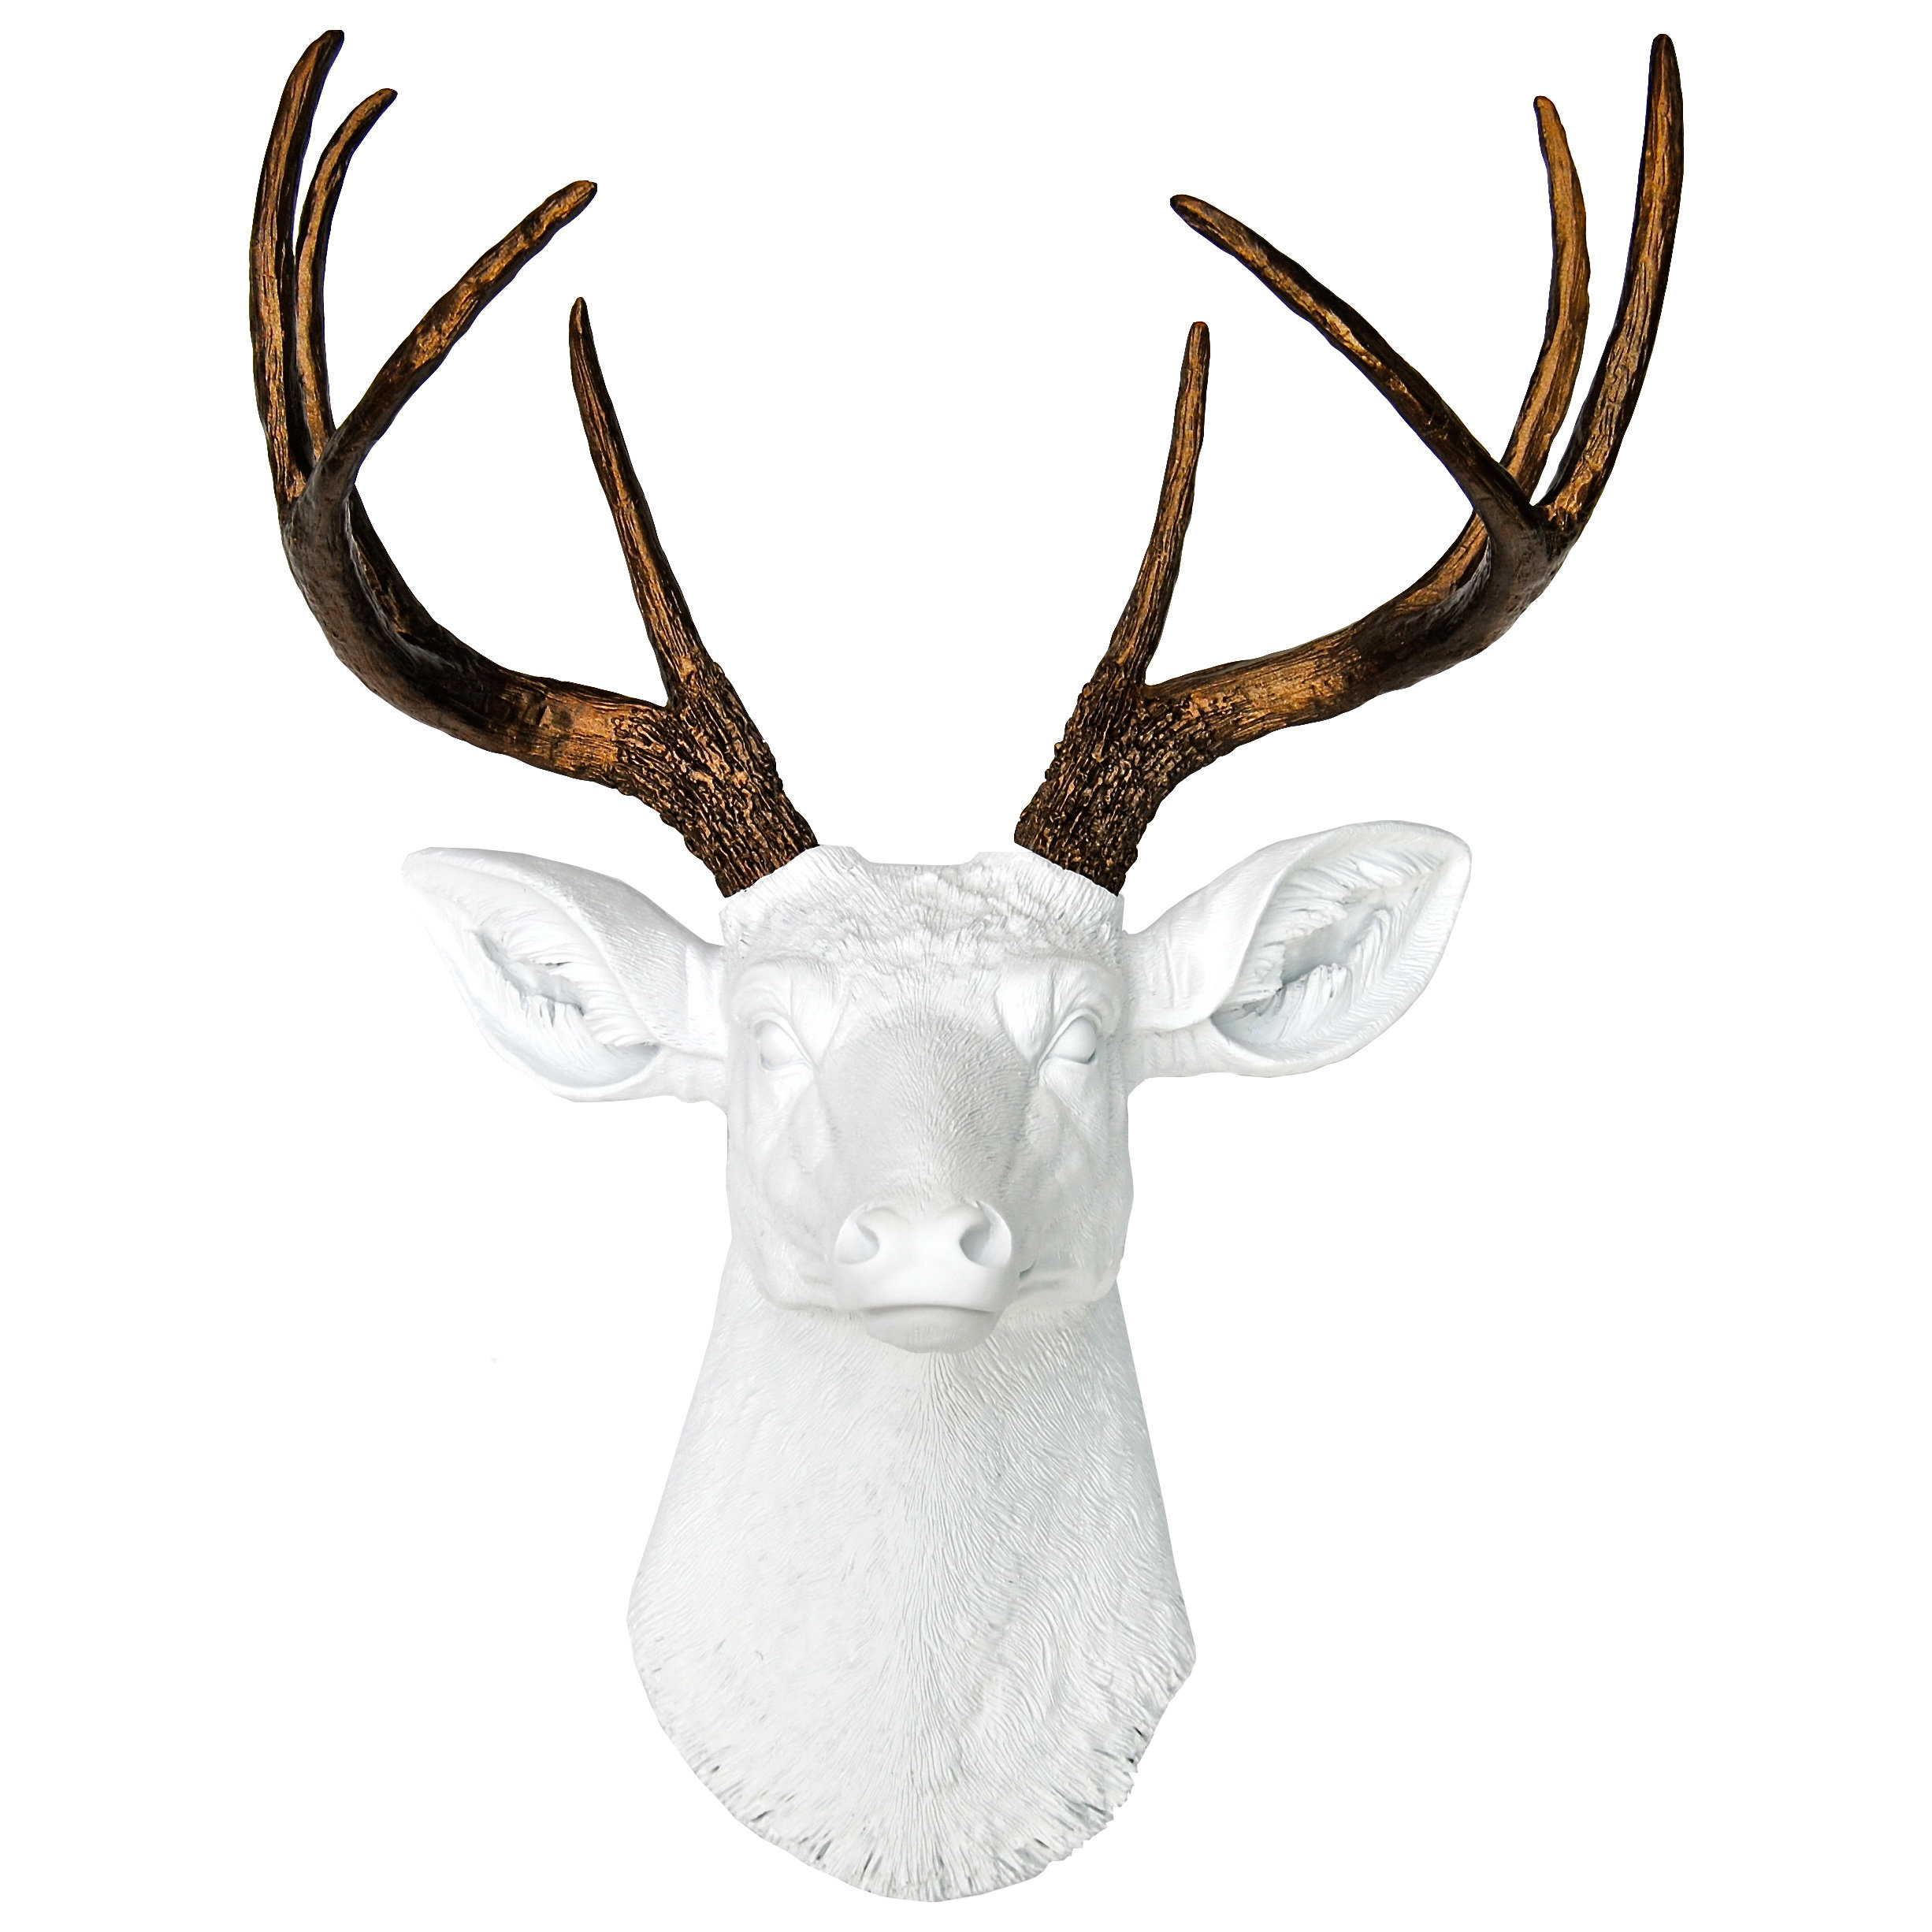 Allmodern Throughout 2020 Large Deer Head Faux Taxidermy Wall Decor (View 3 of 20)